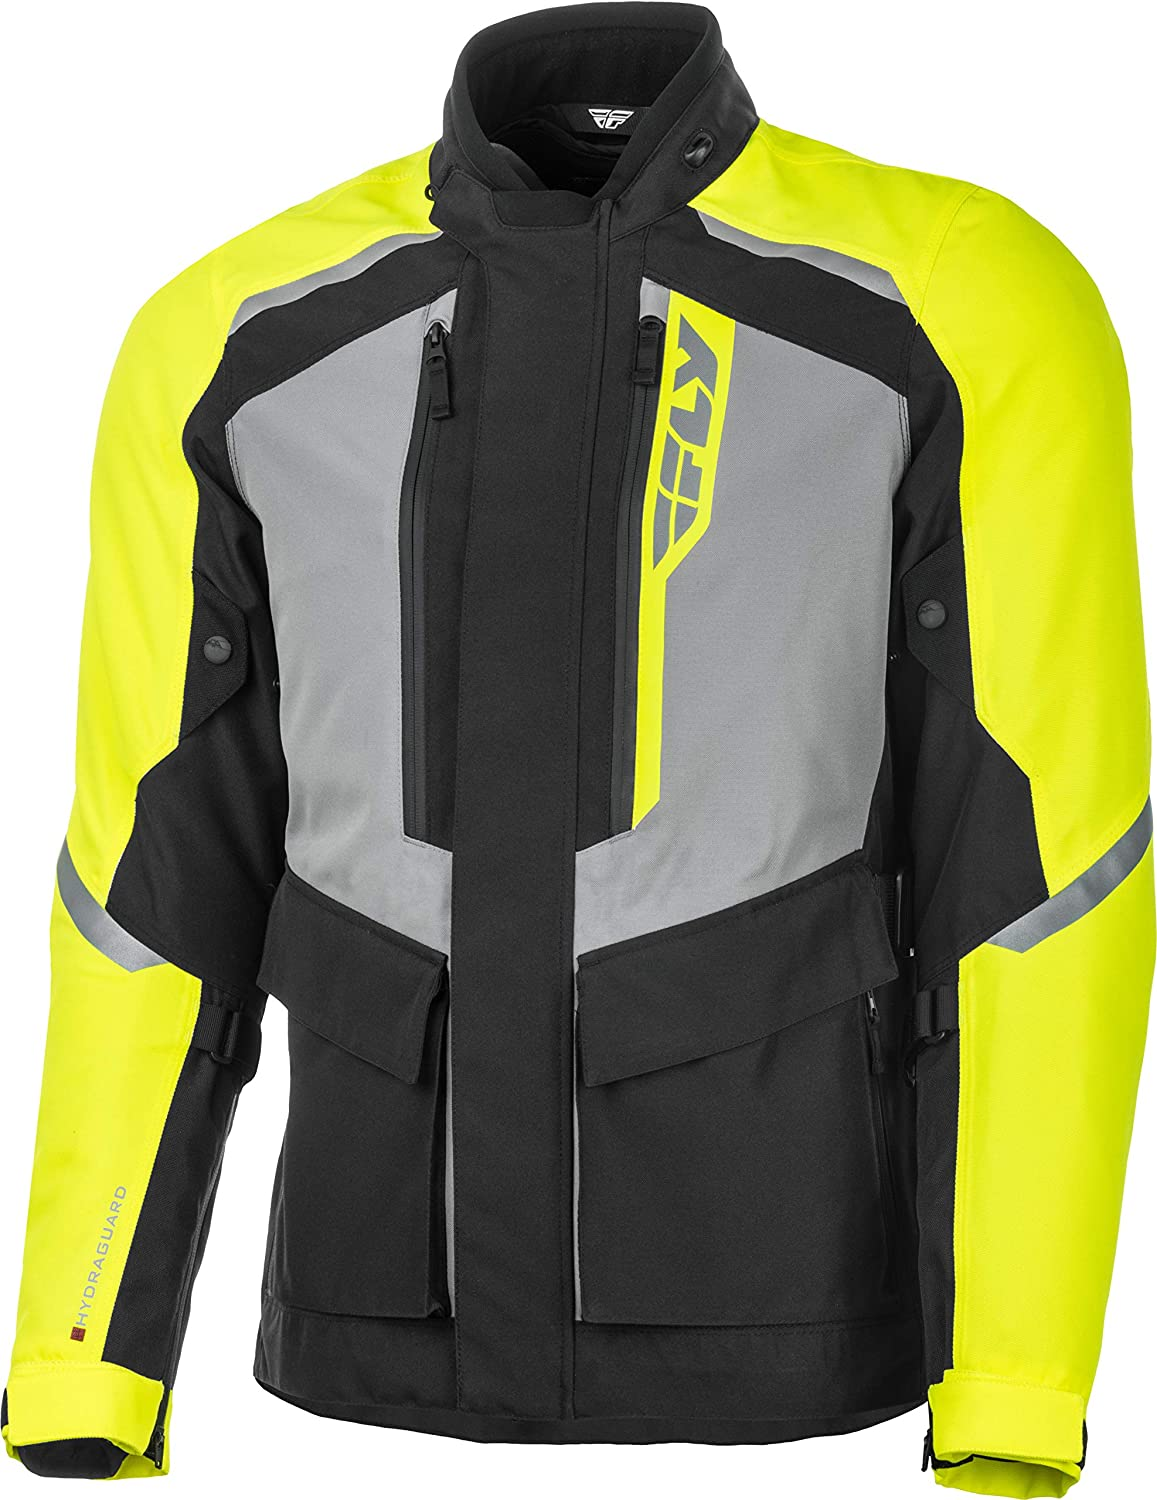 Fly Racing SEAL limited product Terra Trek Jackets Motorcycle Street Men's High quality new